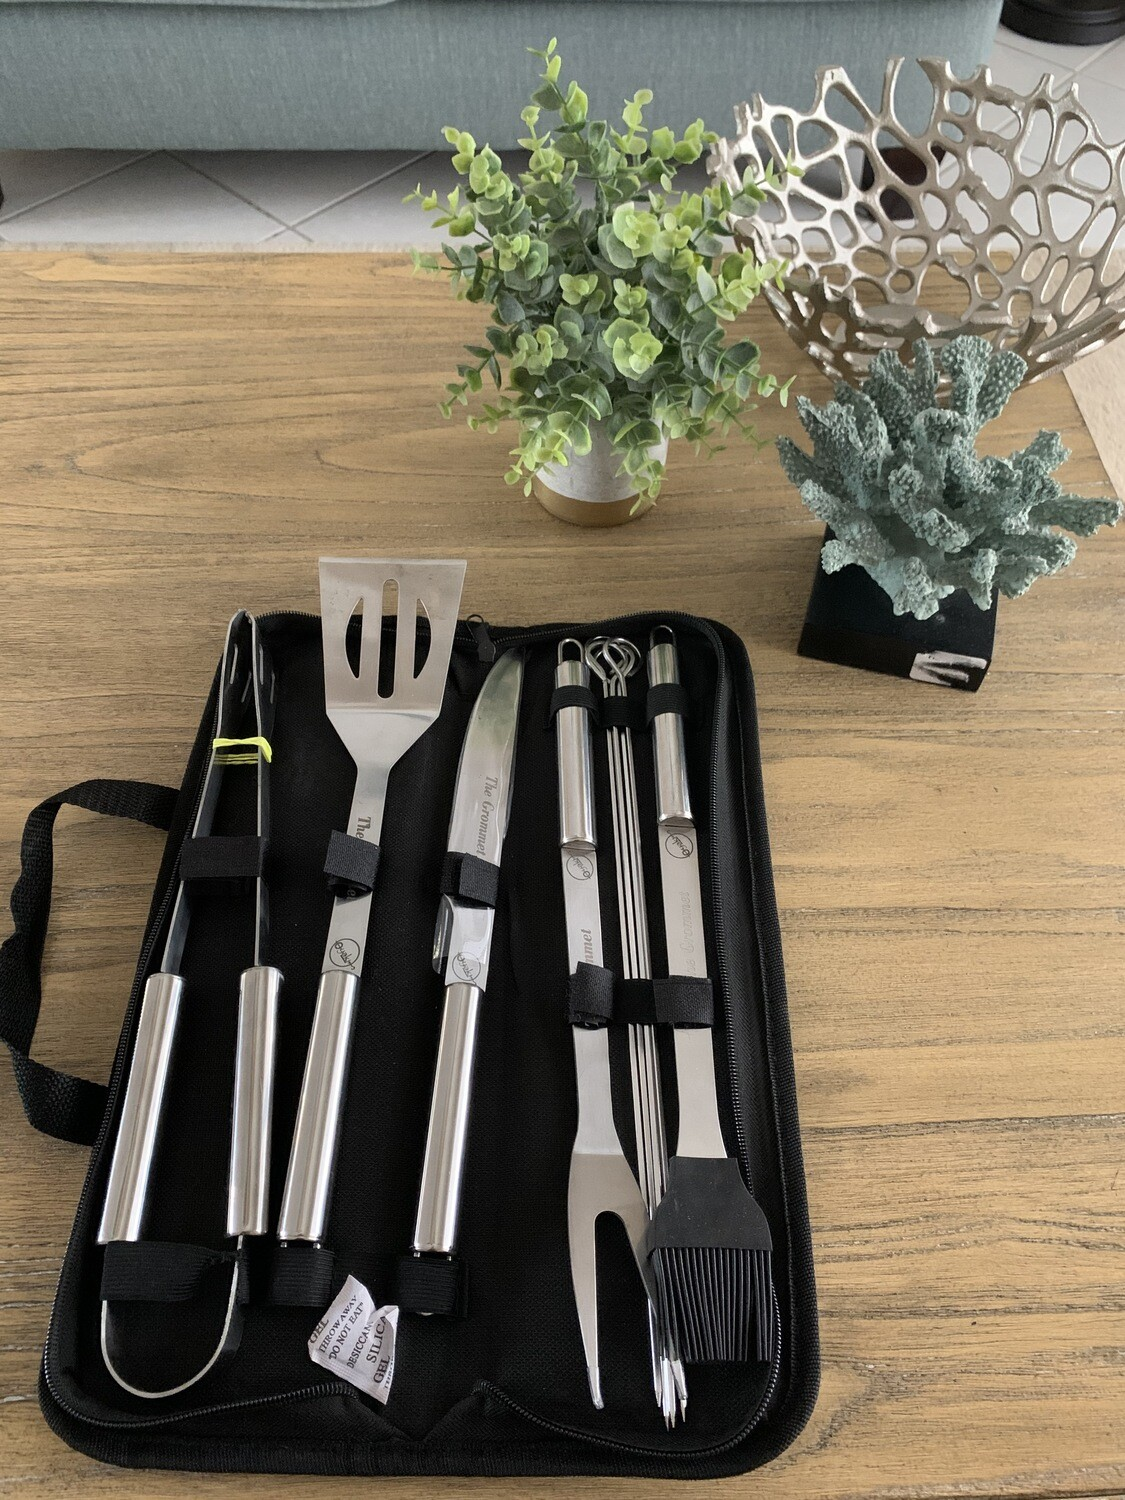 O-Yaki Grilling stainless steel accessories, including skewer, tons, and spatula, in a black carry-case.